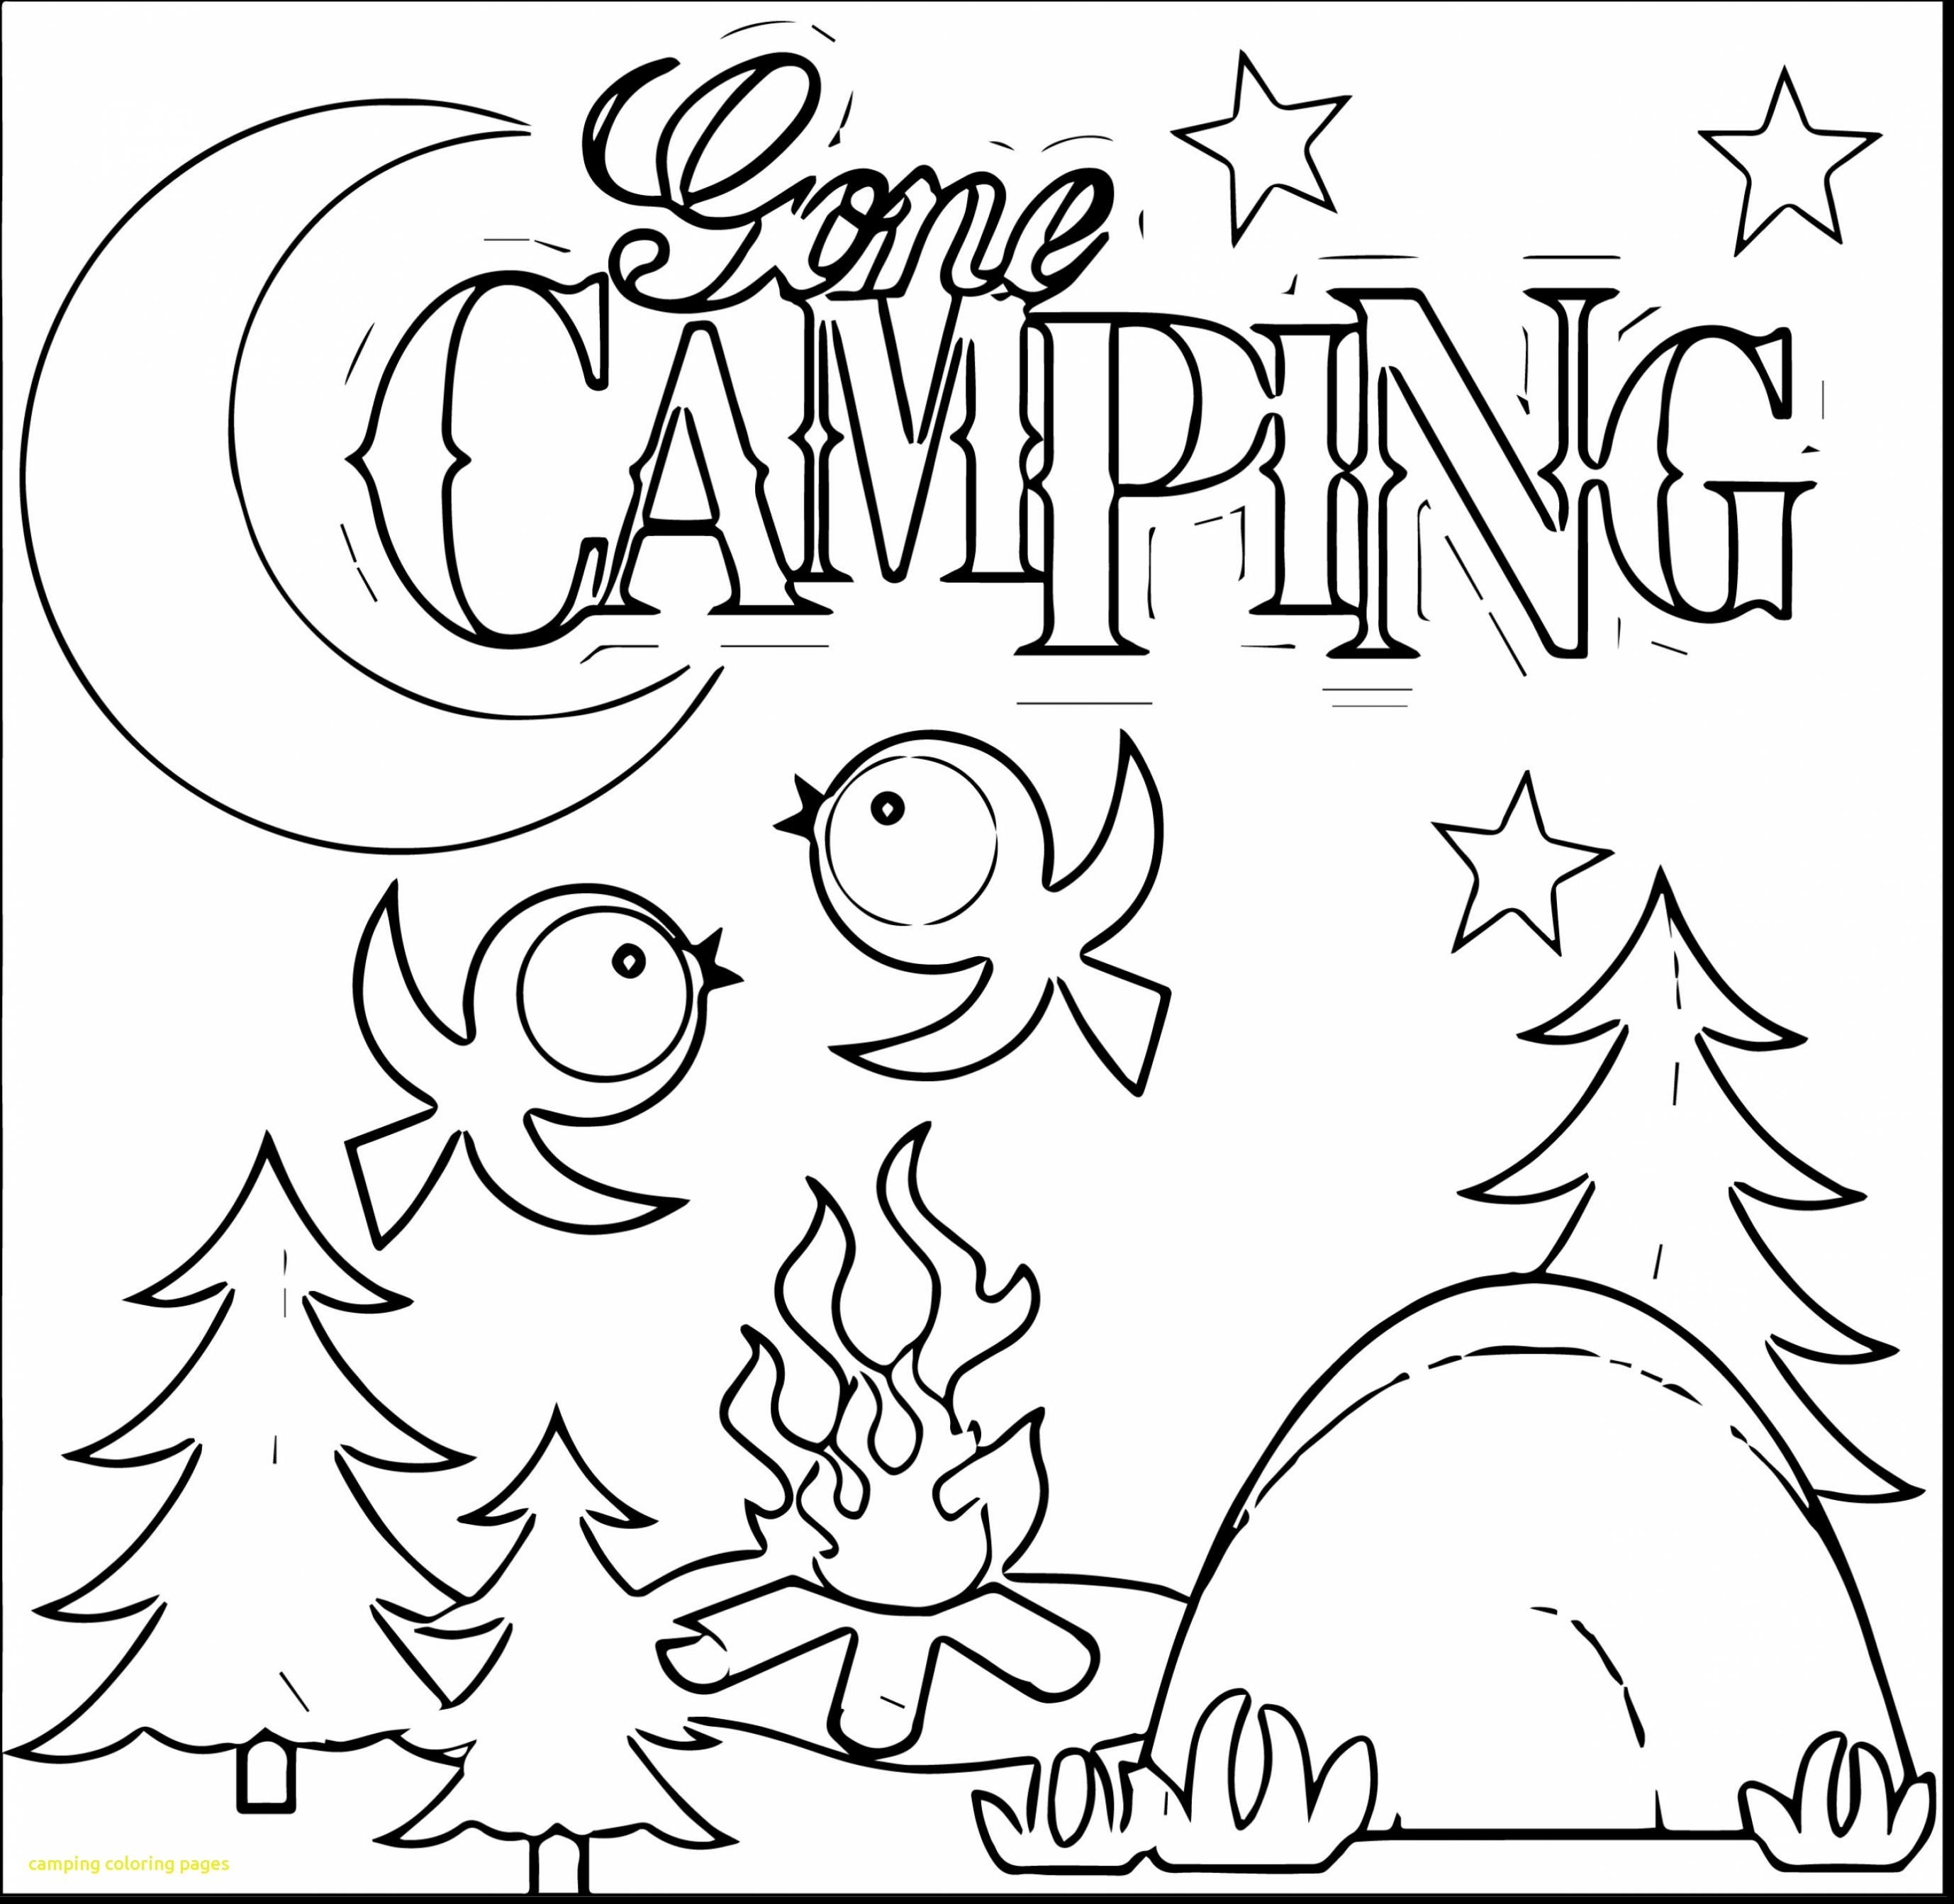 2756x2686 Girl Camping Coloring Pages To Print Free Coloring Sheets